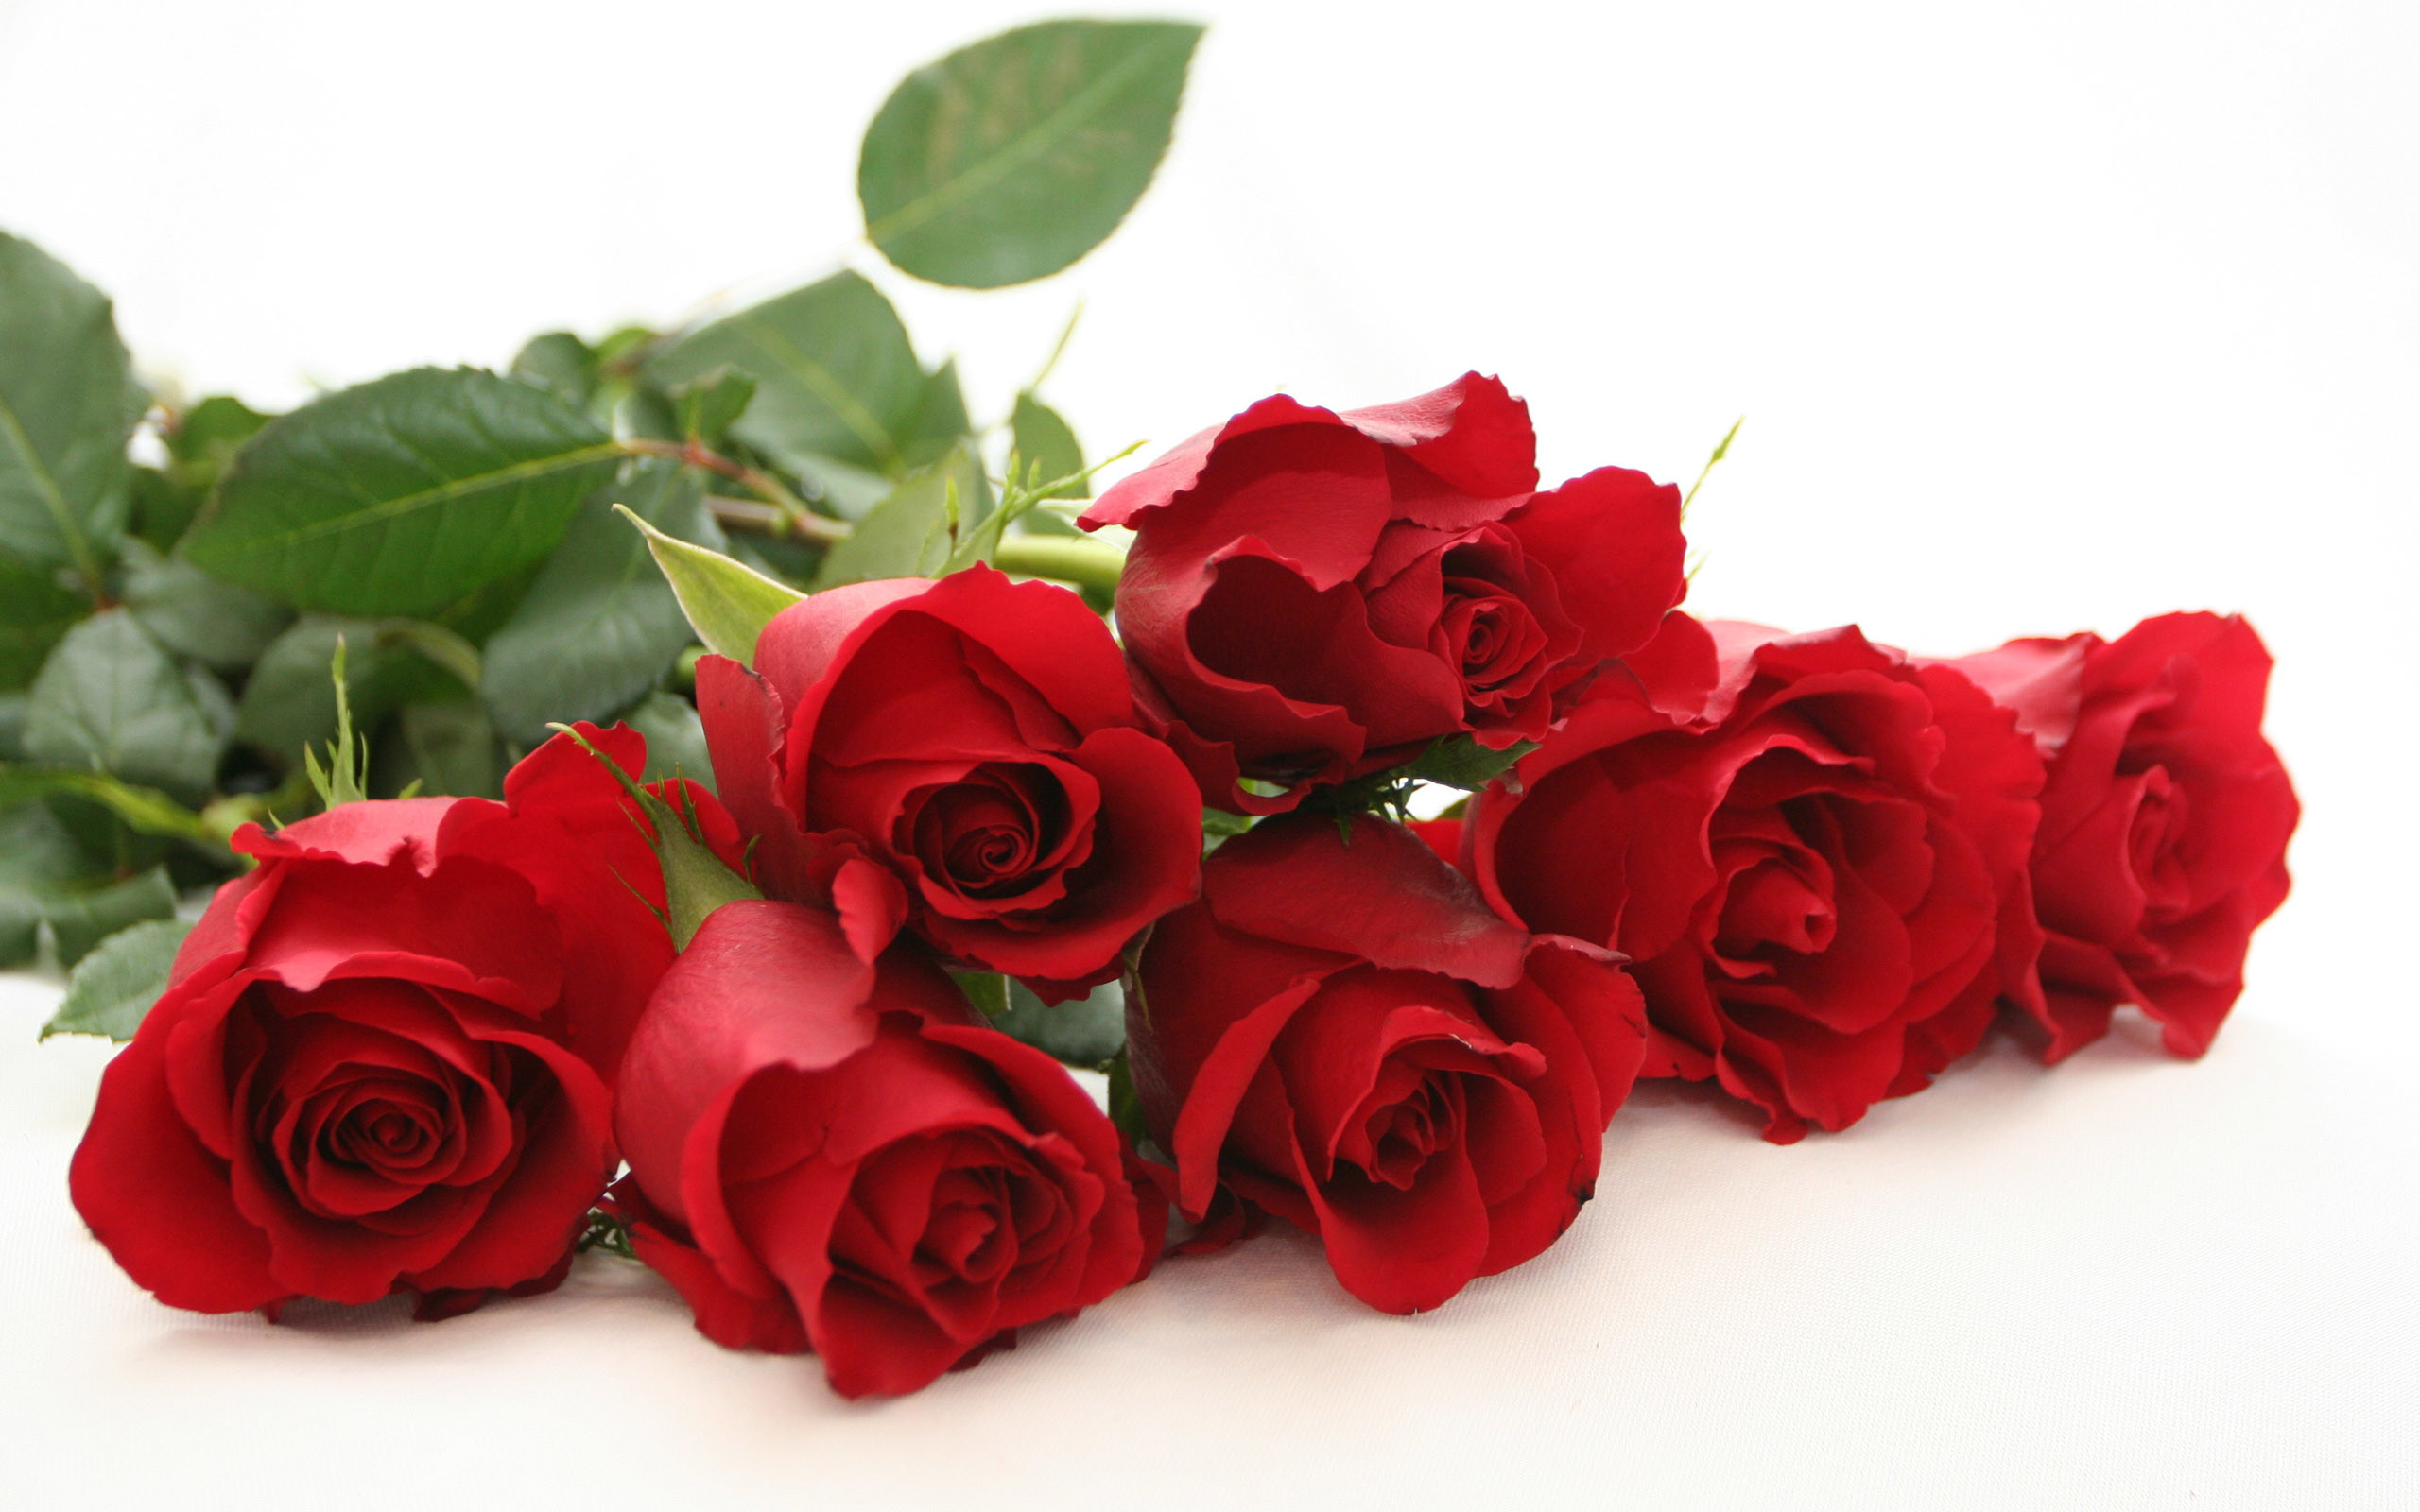 2560x1600 red roses Beautiful Rose Flower Wallpapers ...